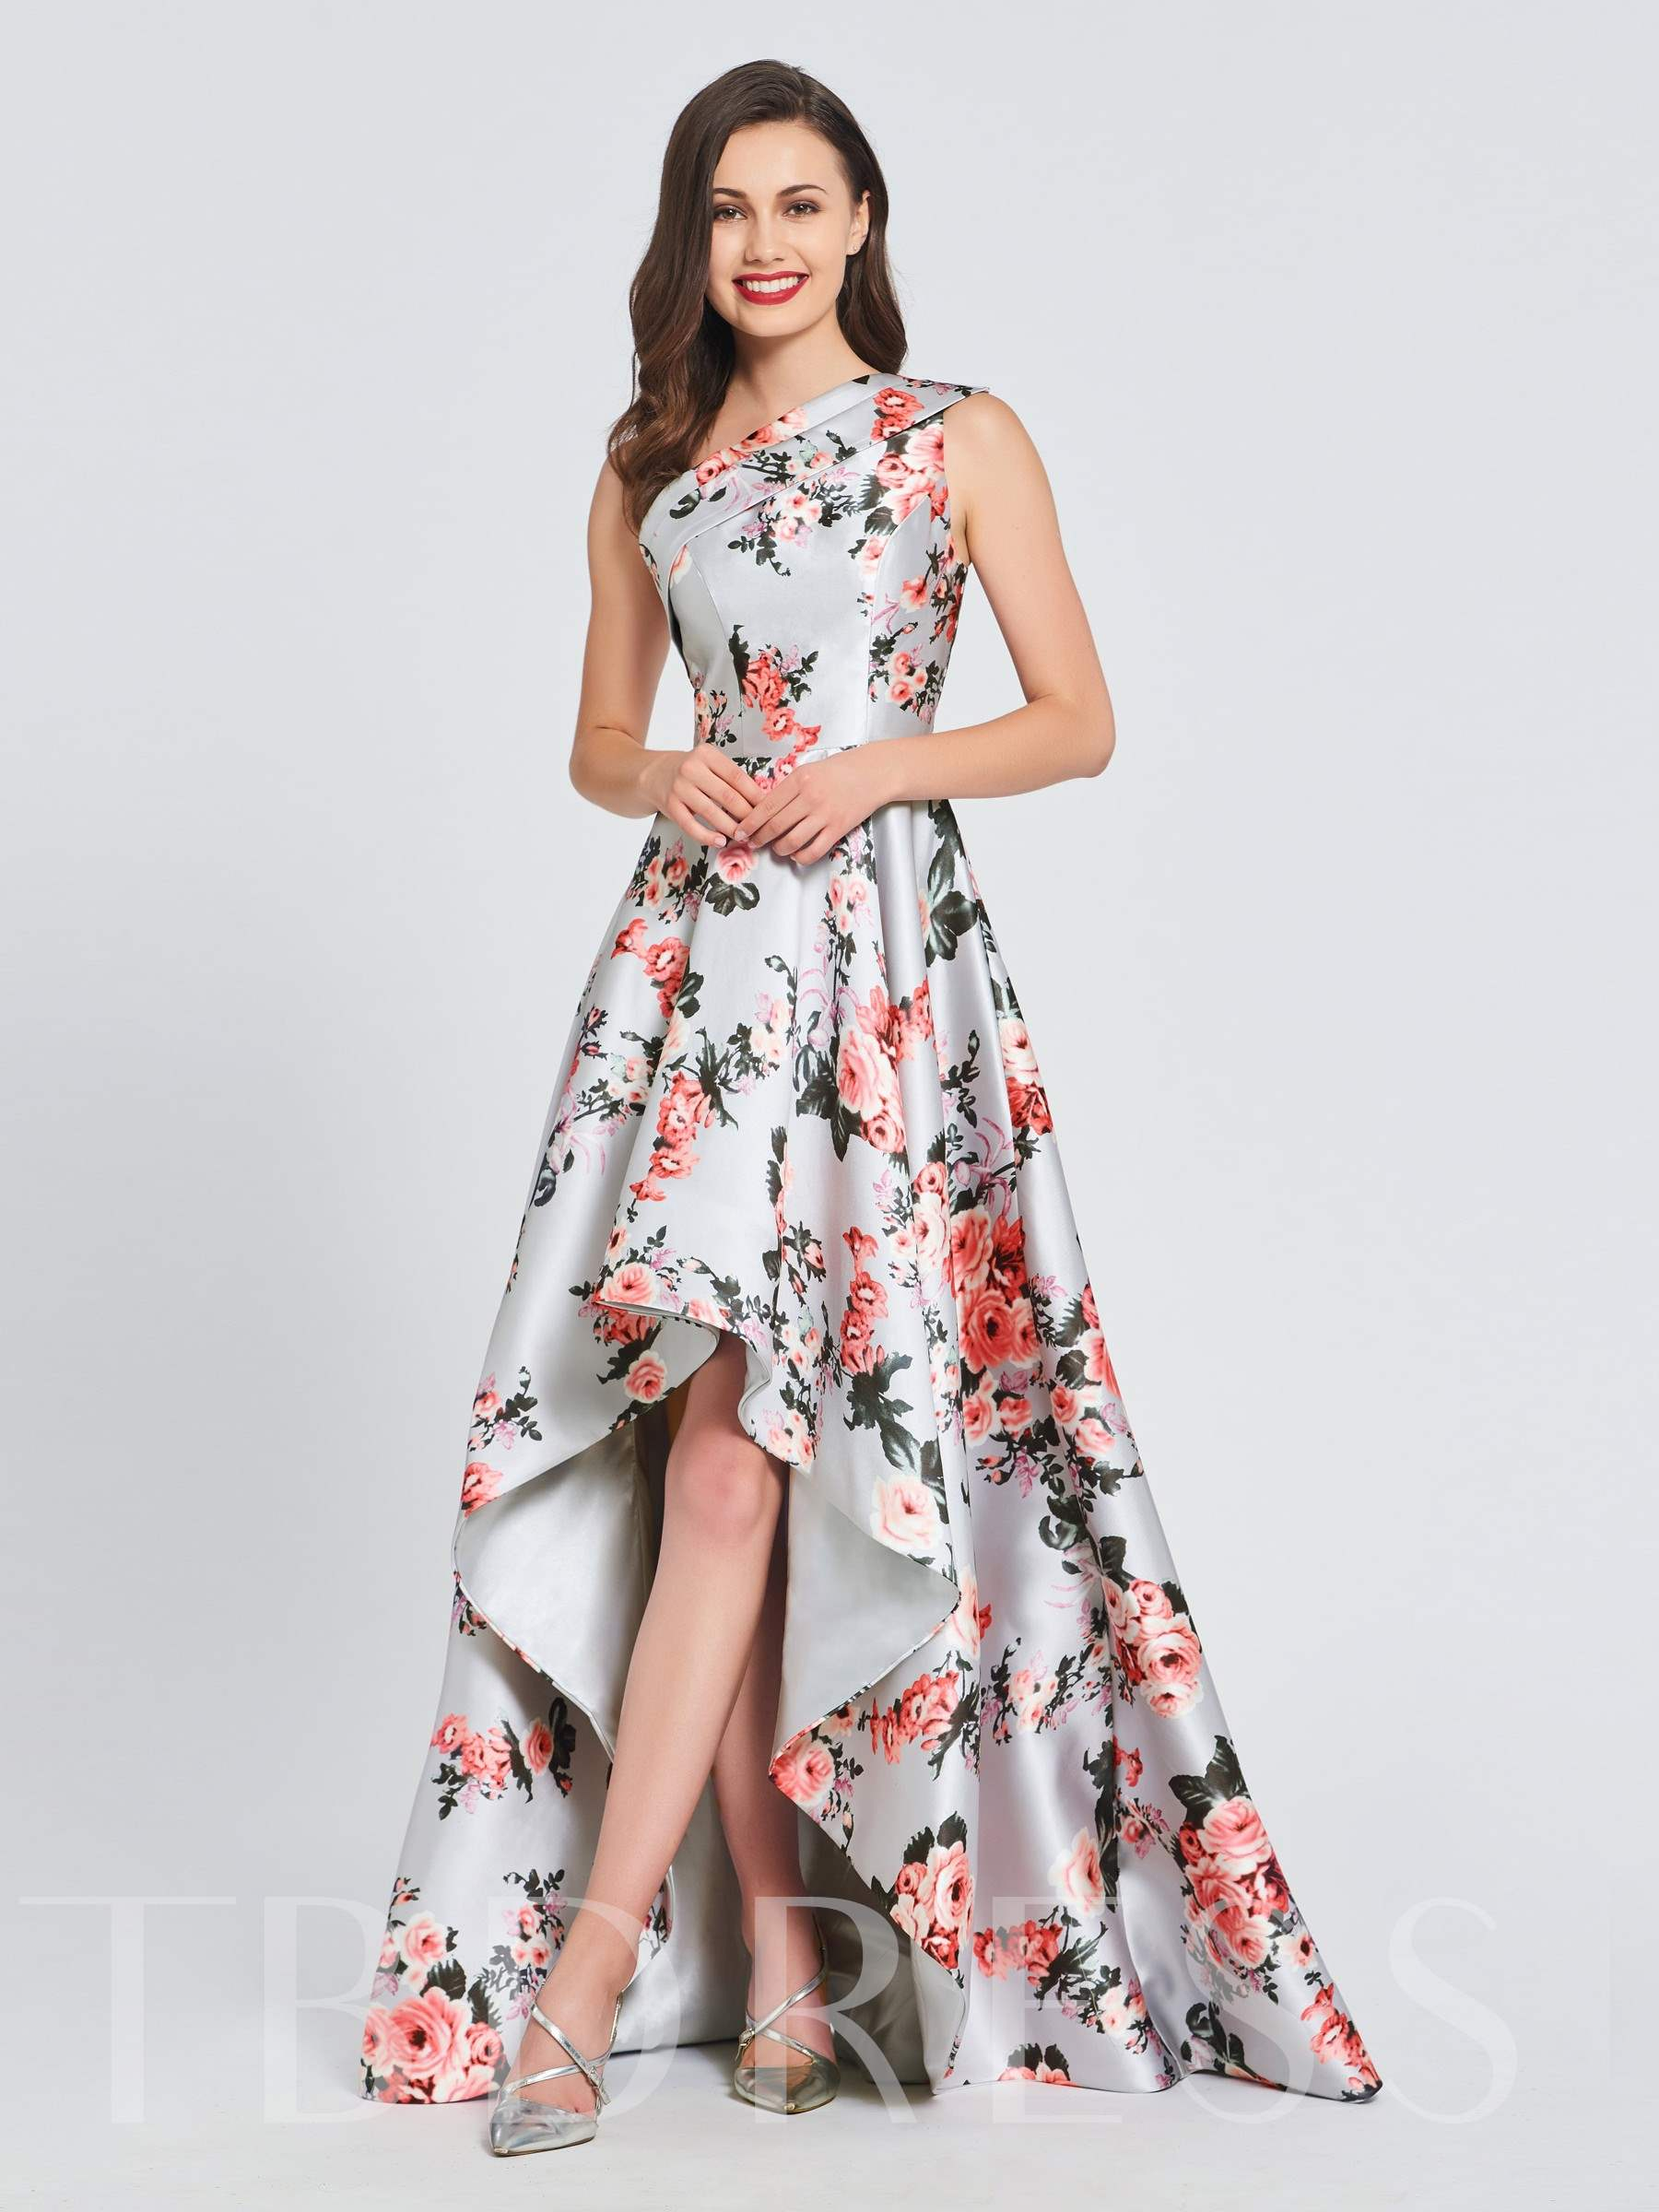 Buy A-Line One-Shoulder Printed Prom Dress, Spring,Summer,Fall,Winter, 13391623 for $142.99 in TBDress store